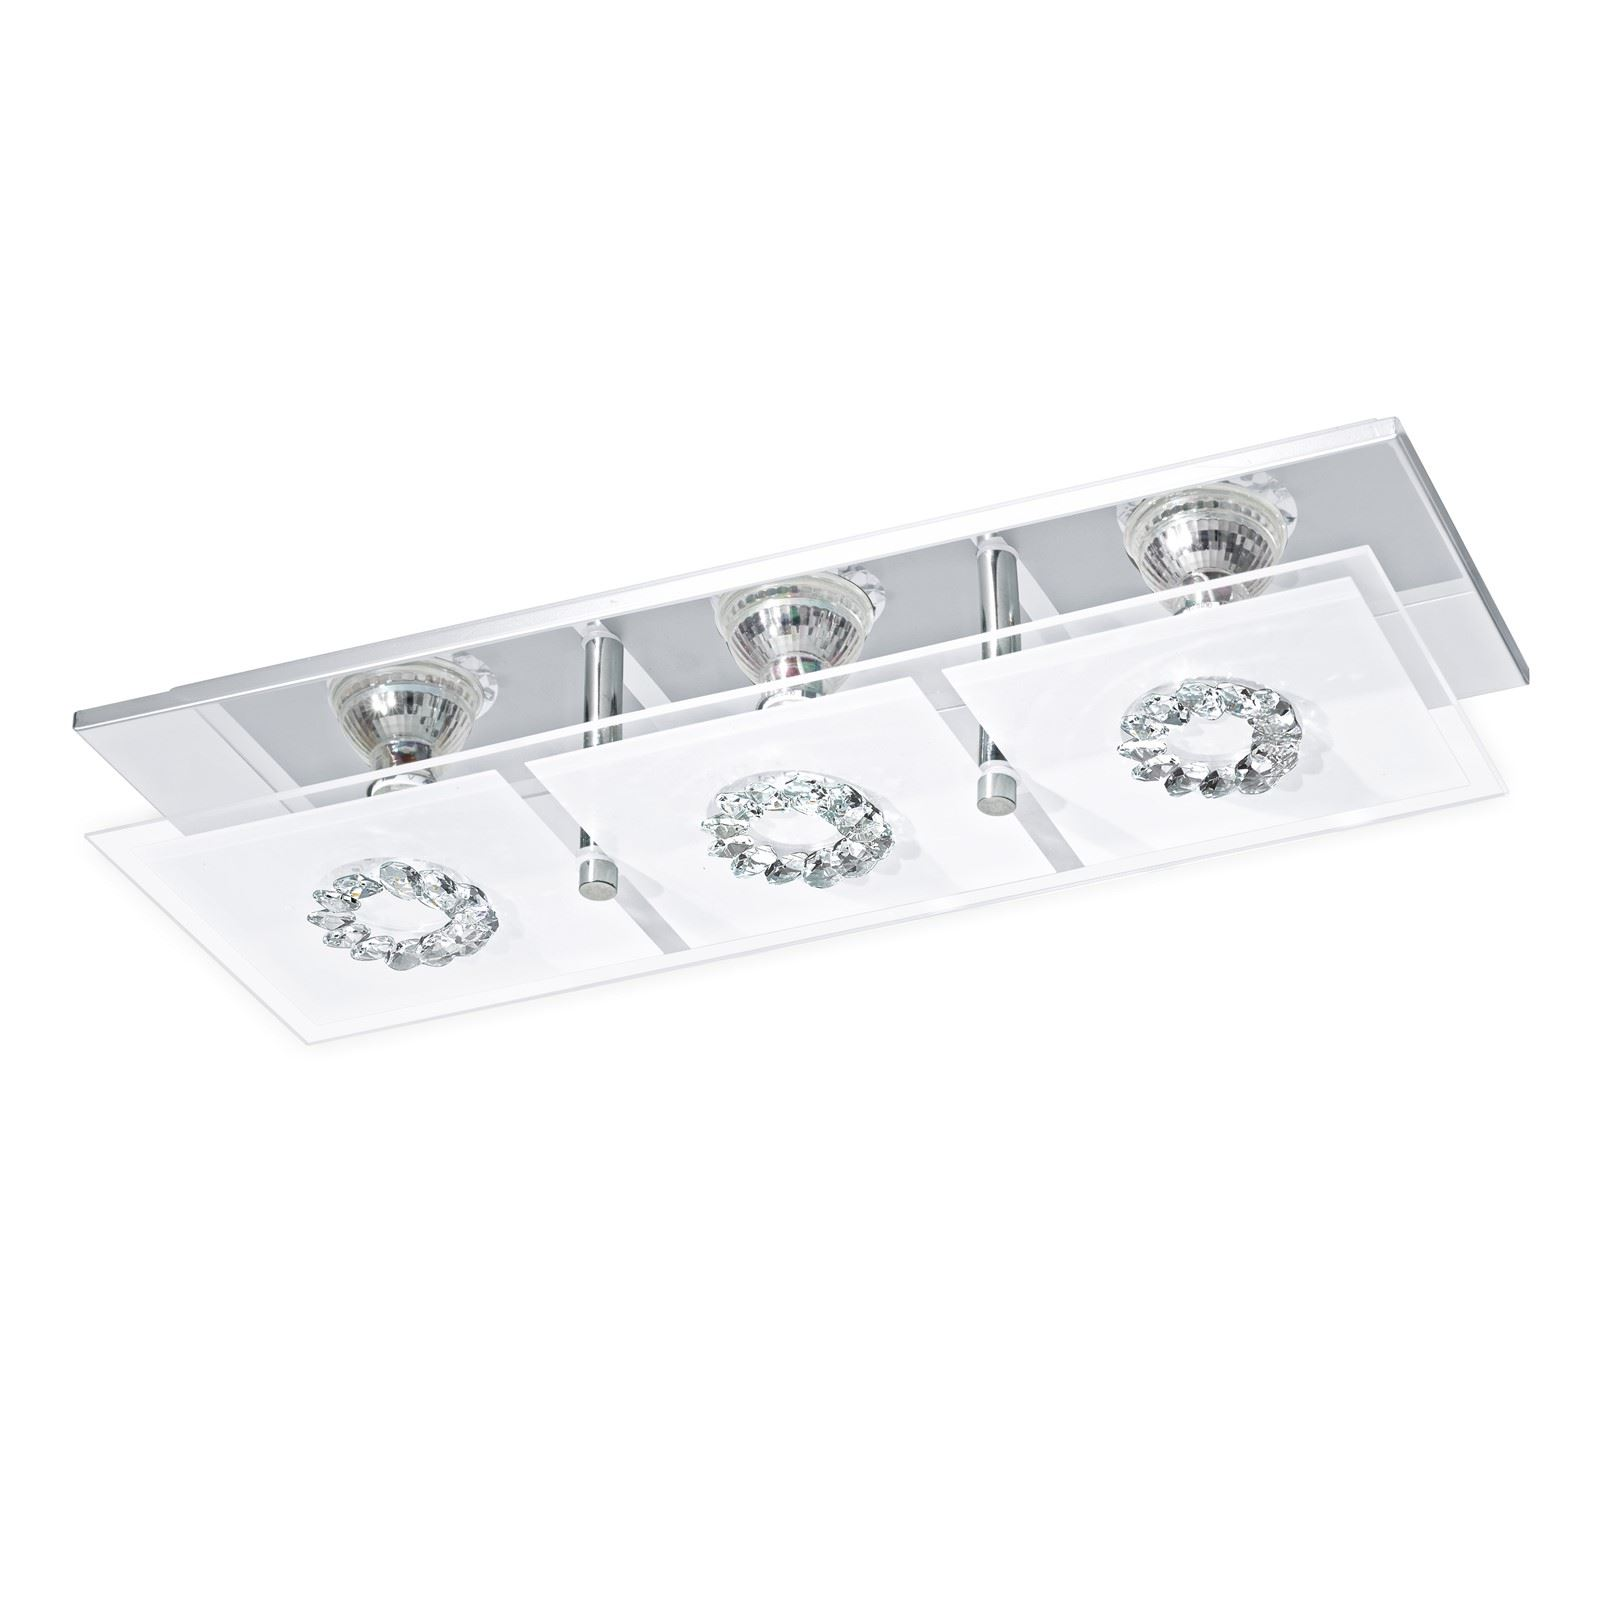 Roncato LED Wall/Ceiling Light 3x 3W Stainless Steel Chrome Clear Satin